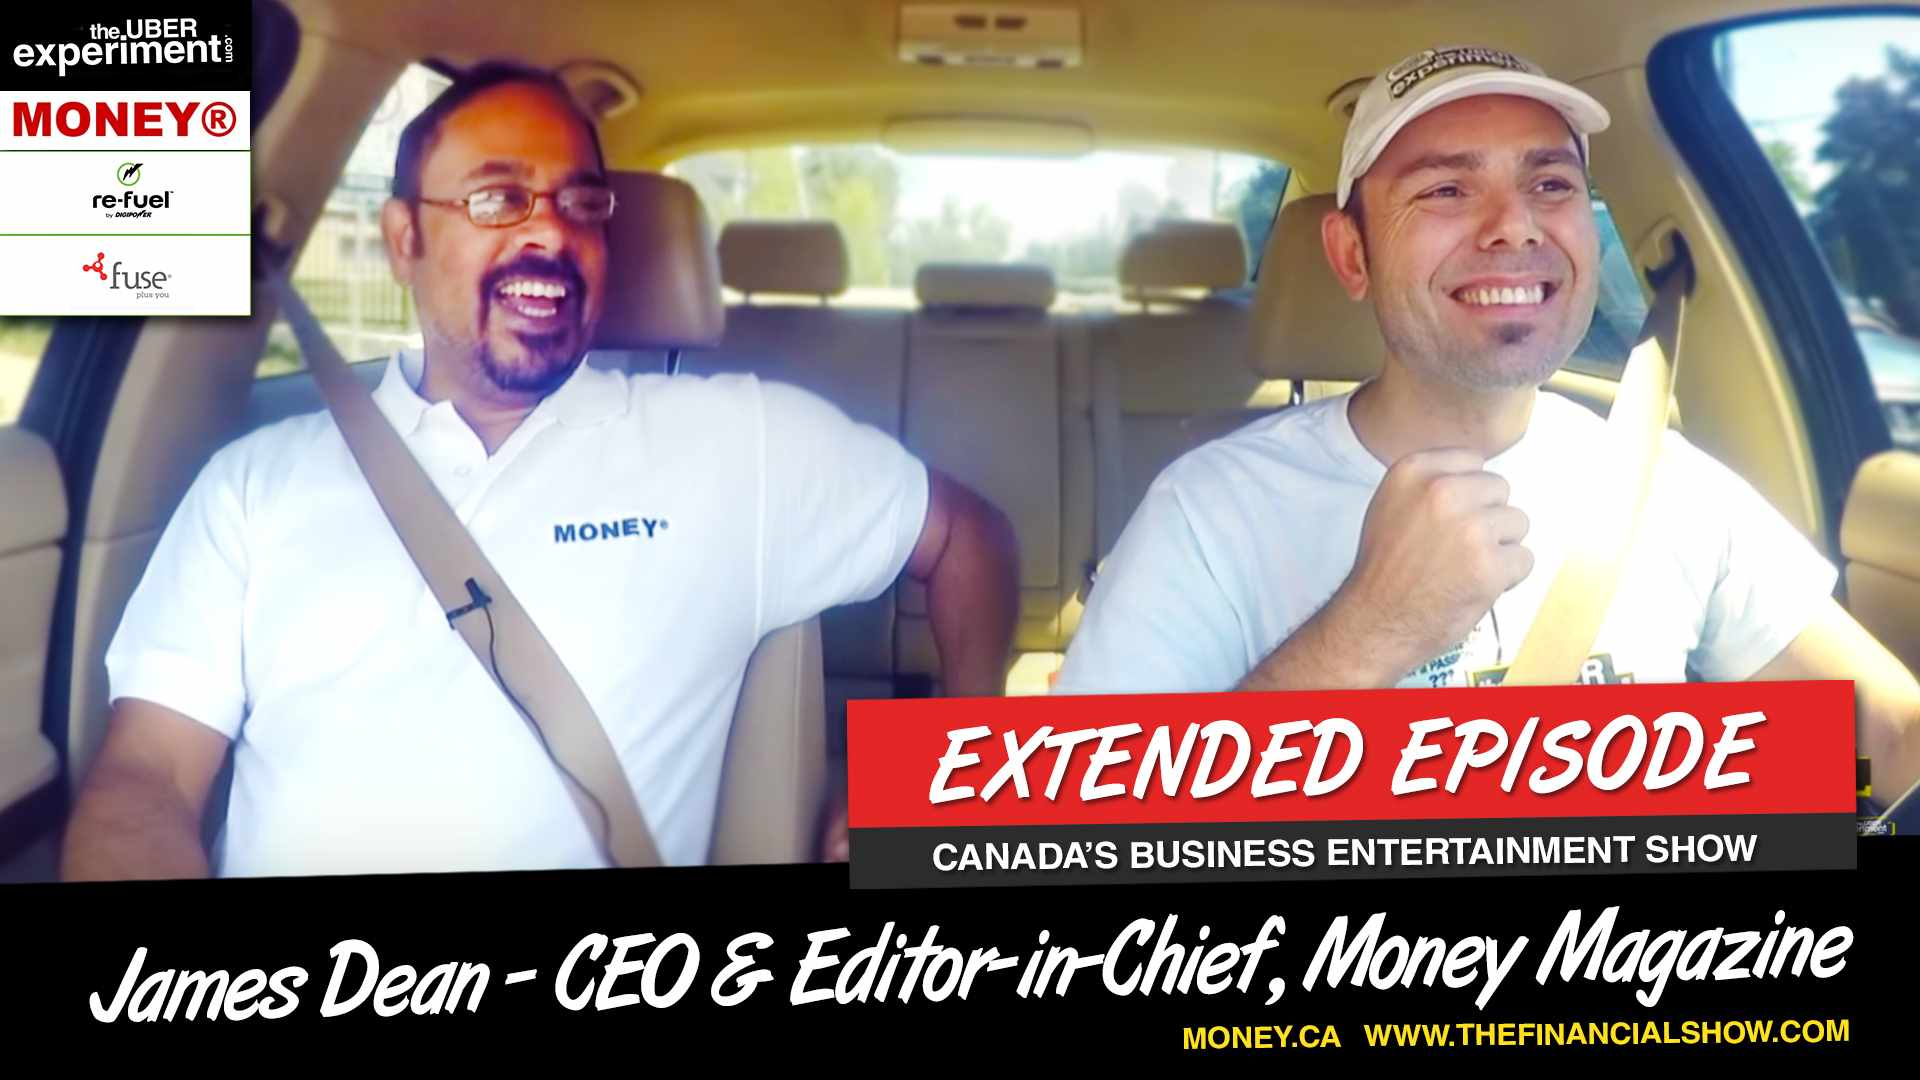 ROBBING A BANK WITH JAMES DEAN (Editor & President of MONEY Magazine on The Uber Experiment)